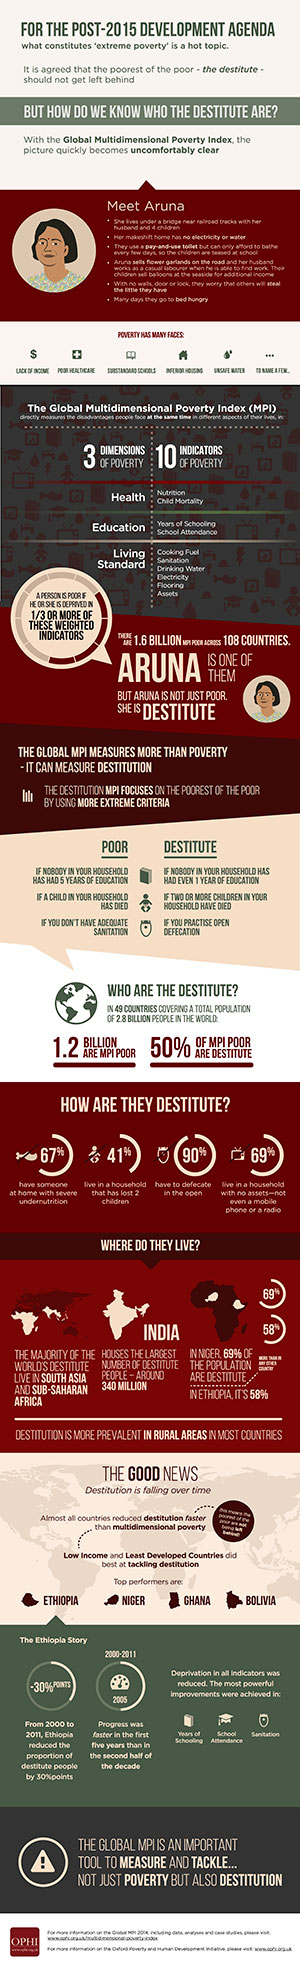 INFOGRAPHICDestitutionweb